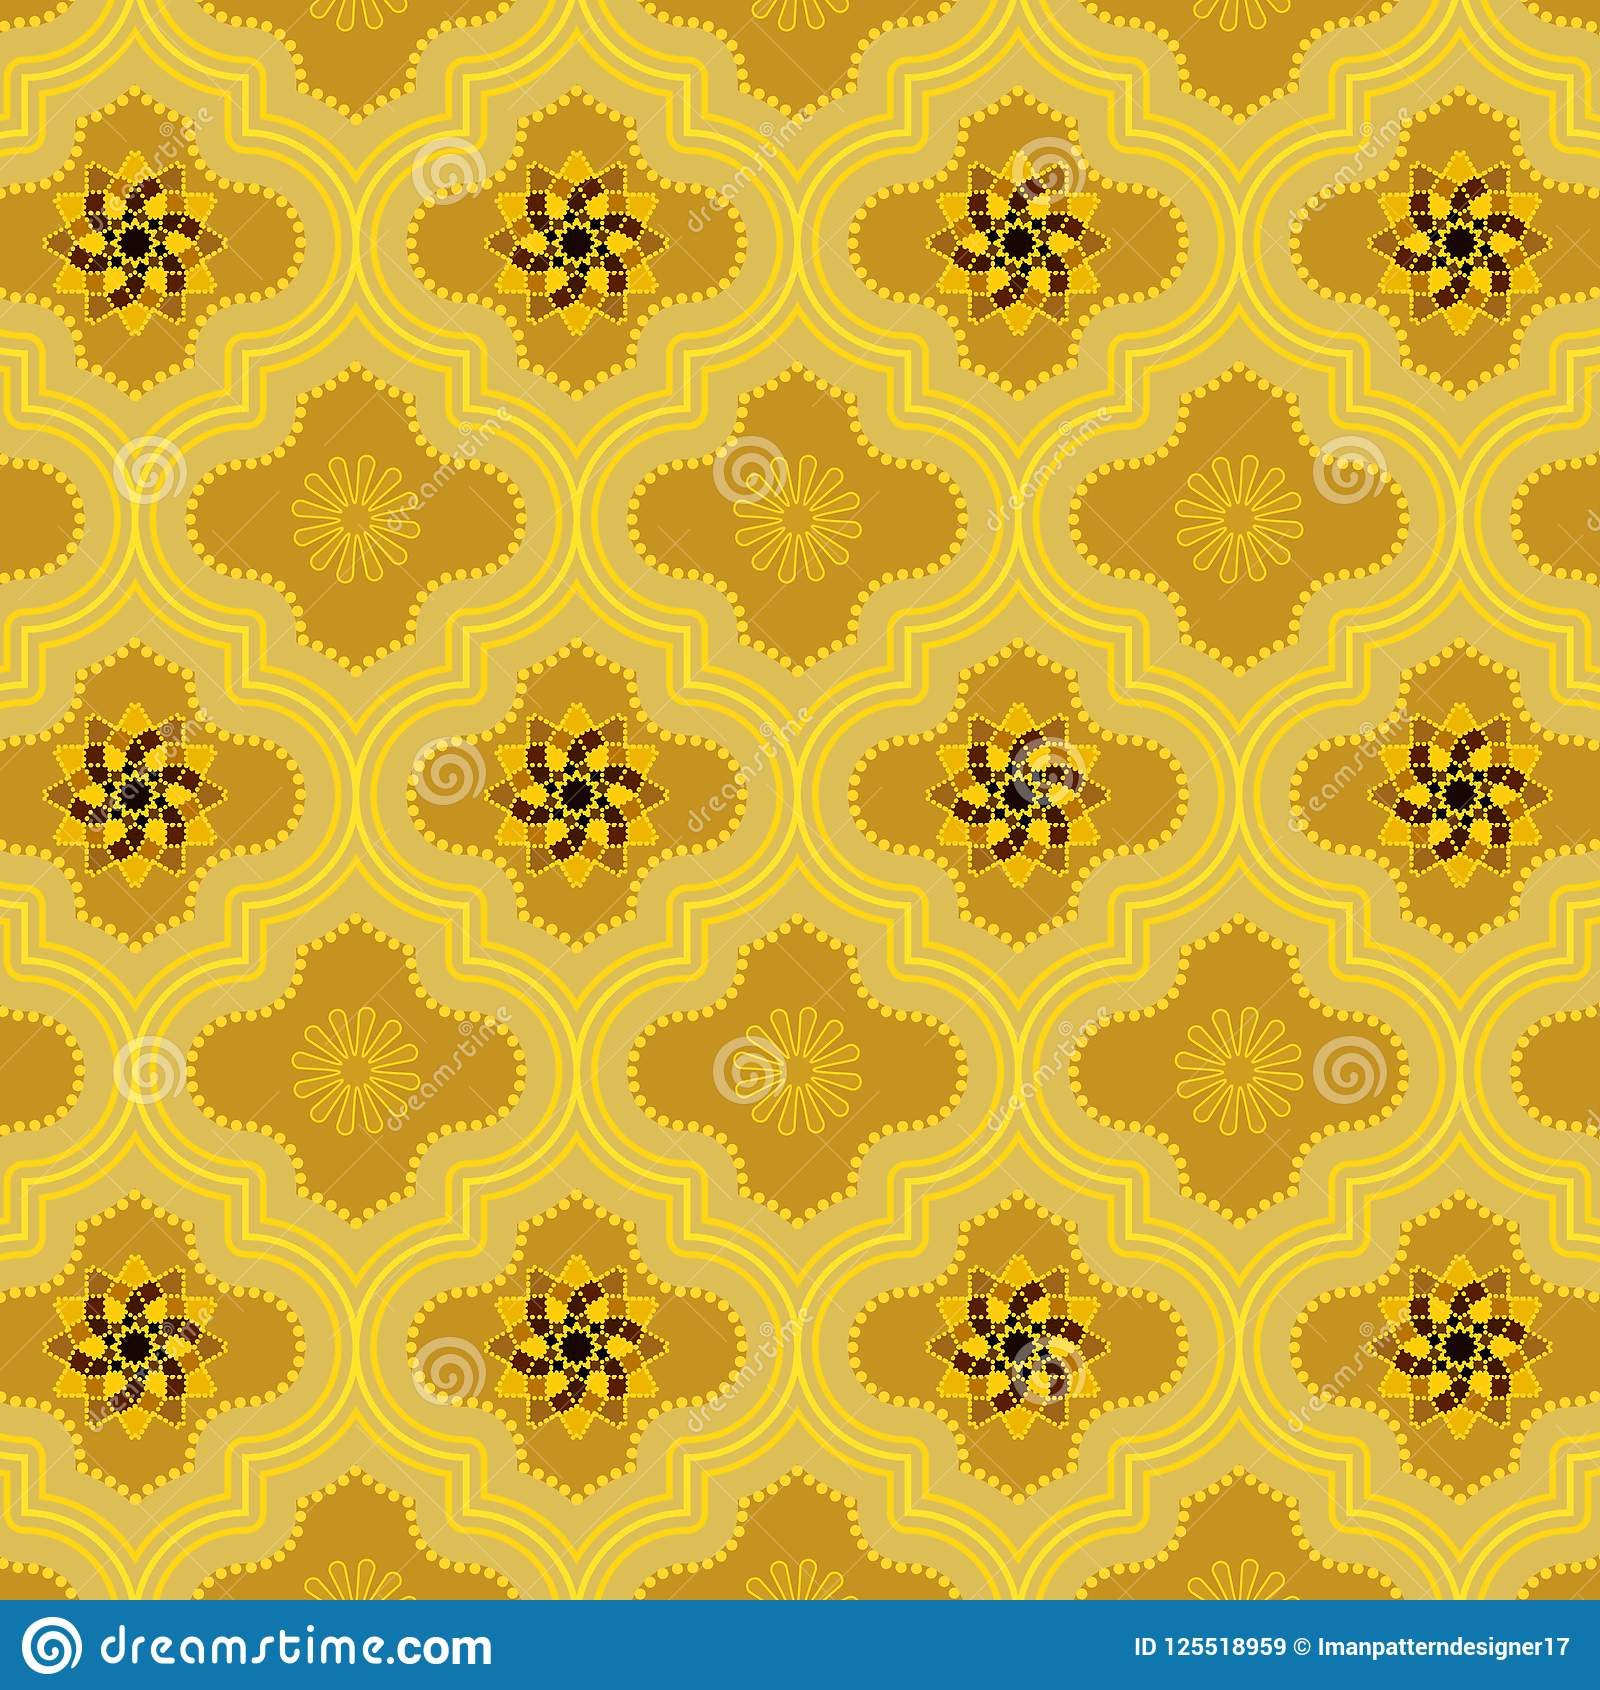 Bright Golden Decorated Moroccan Seamless Pattern With Cute Floral Designs Stock Vector Illustration Of Design Bright 125518959